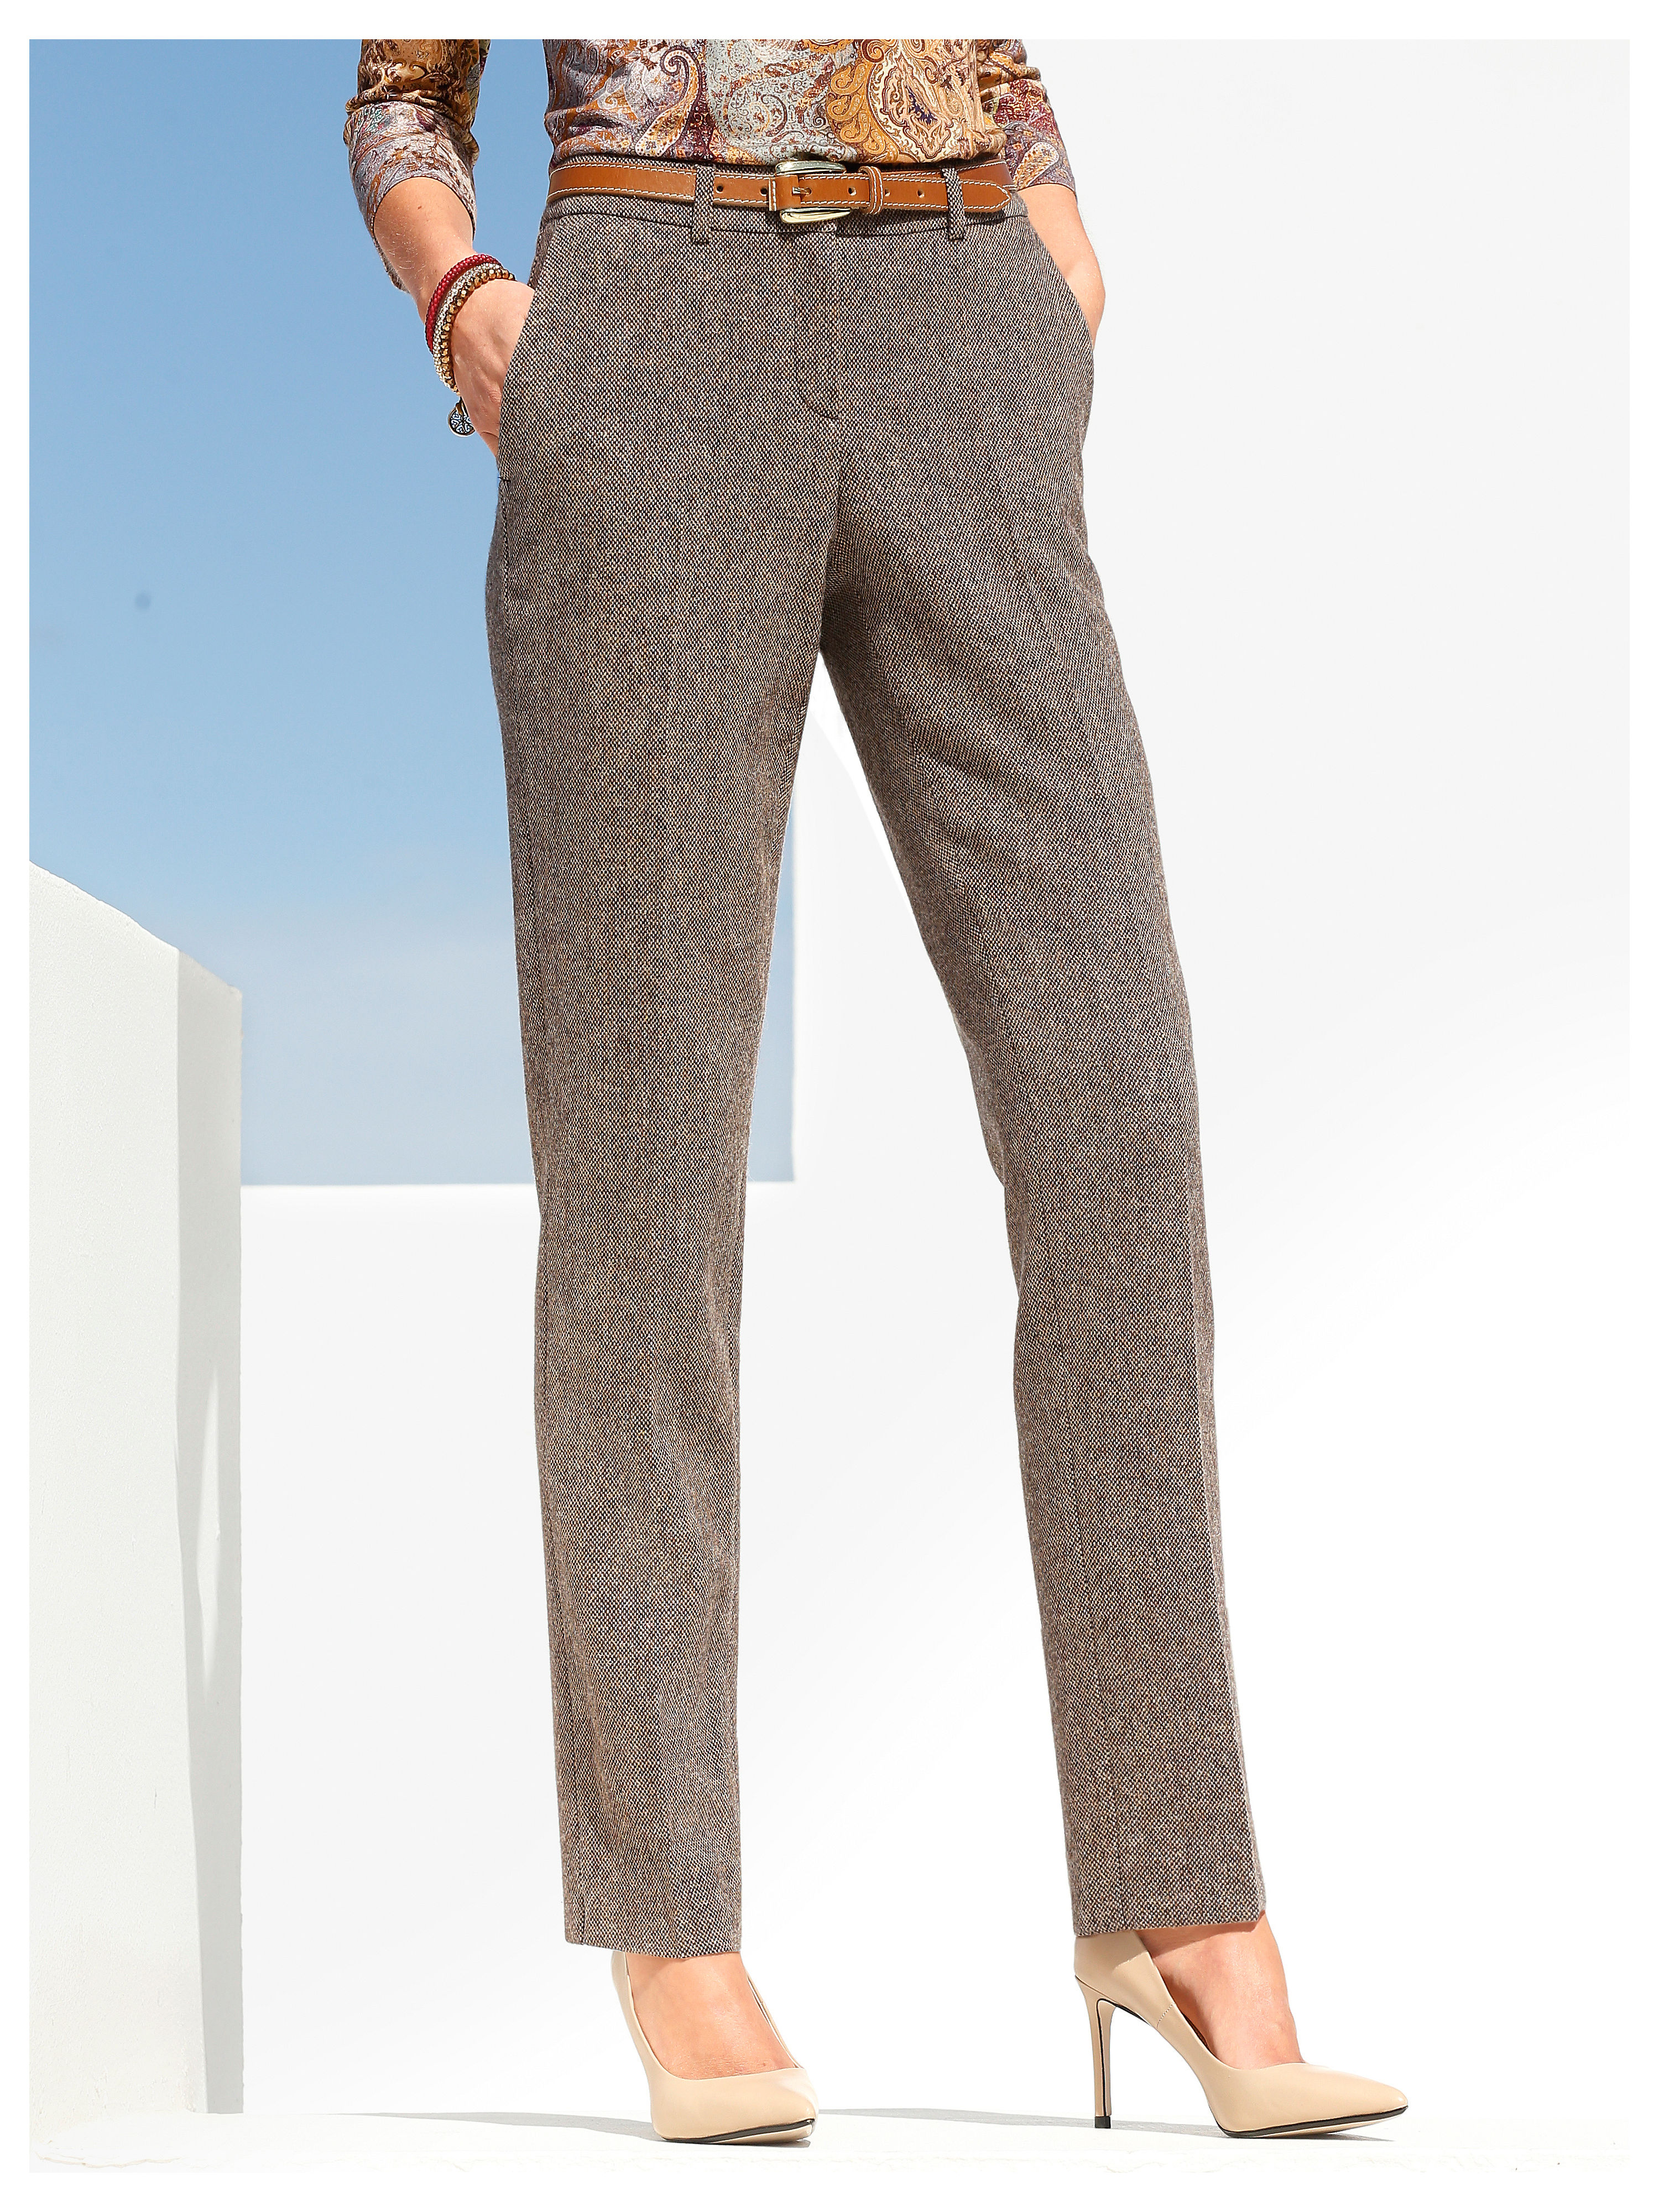 Tweed trousers from Peter Hahn multicoloured